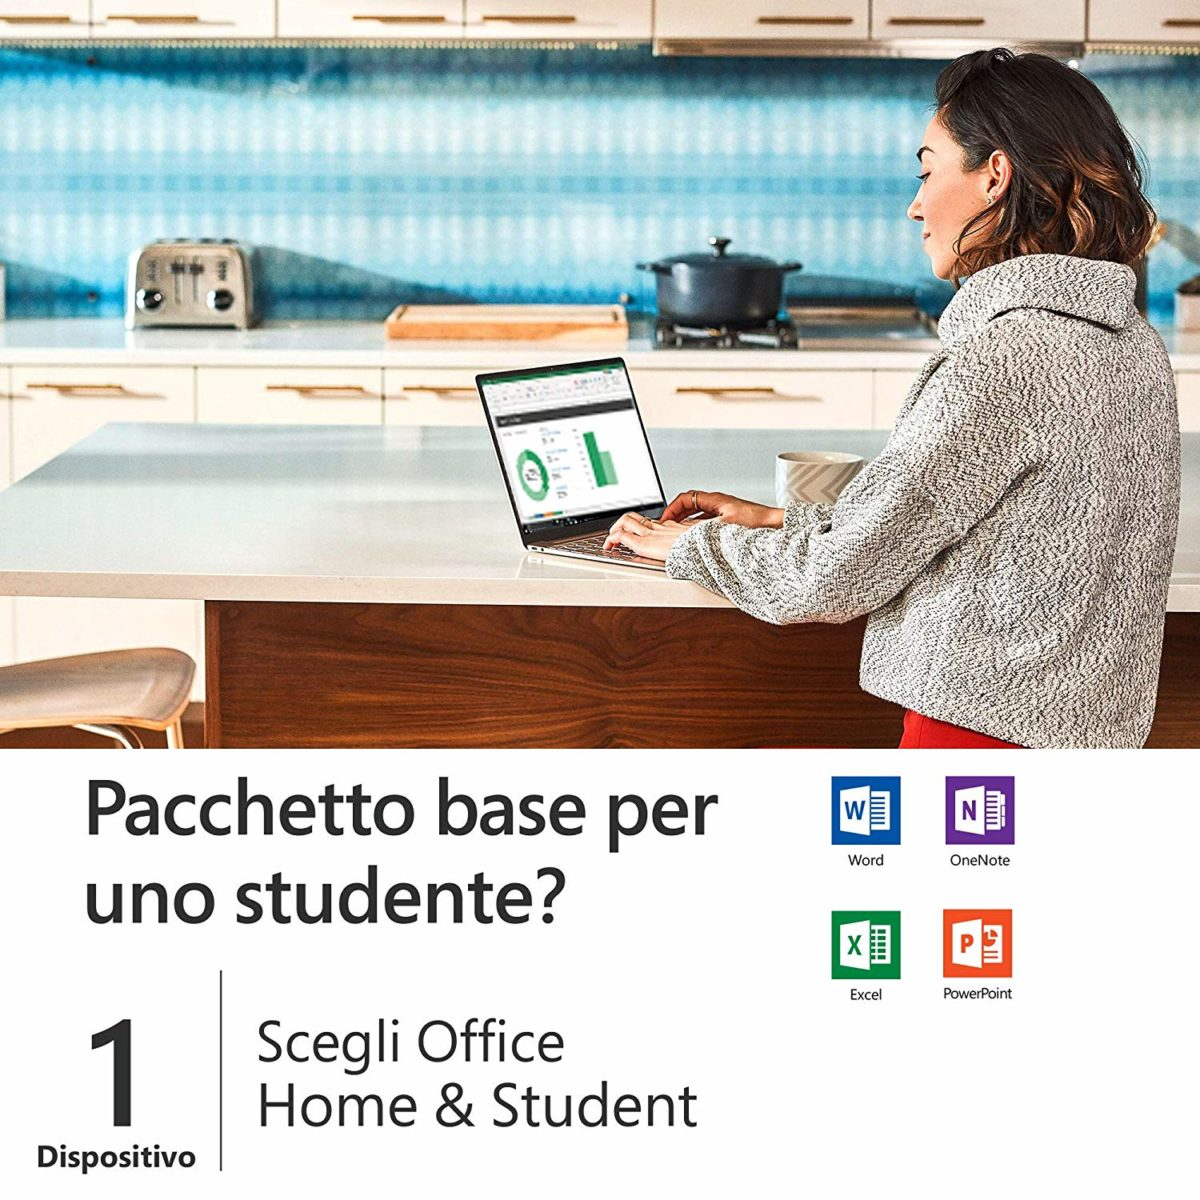 Microsoft Office Home & Student 2019 in offerta a meno di 100 euro